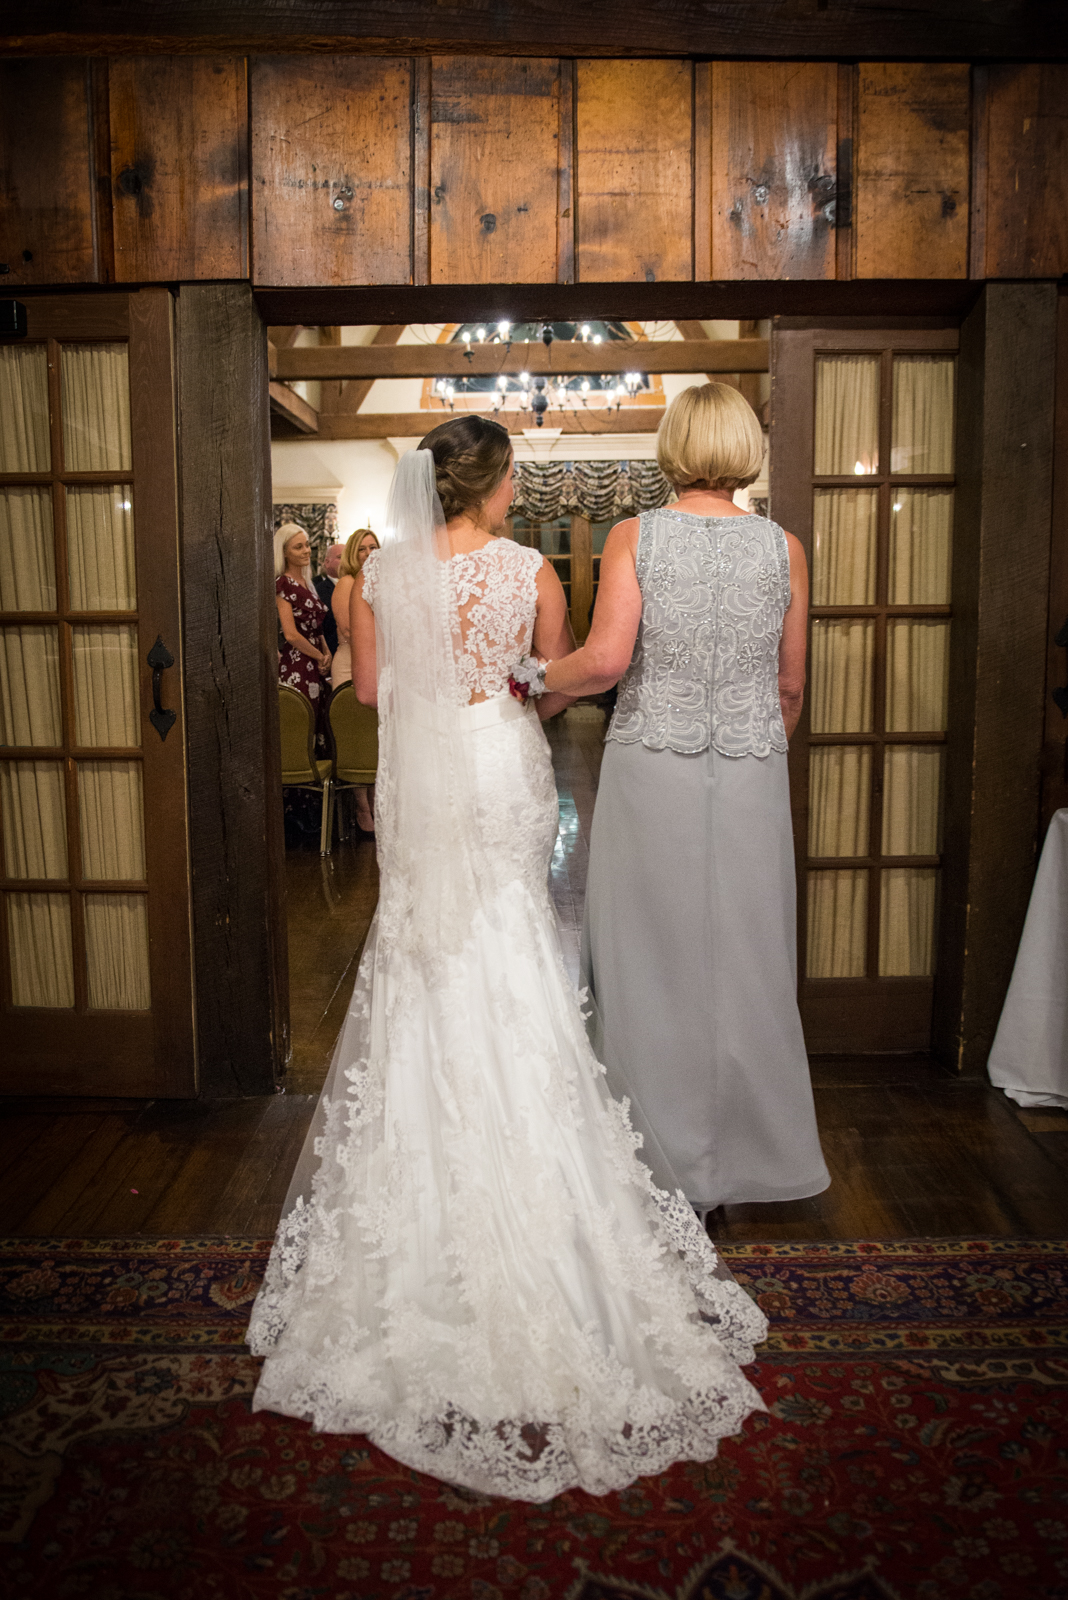 Getting ready to walk down the aisle